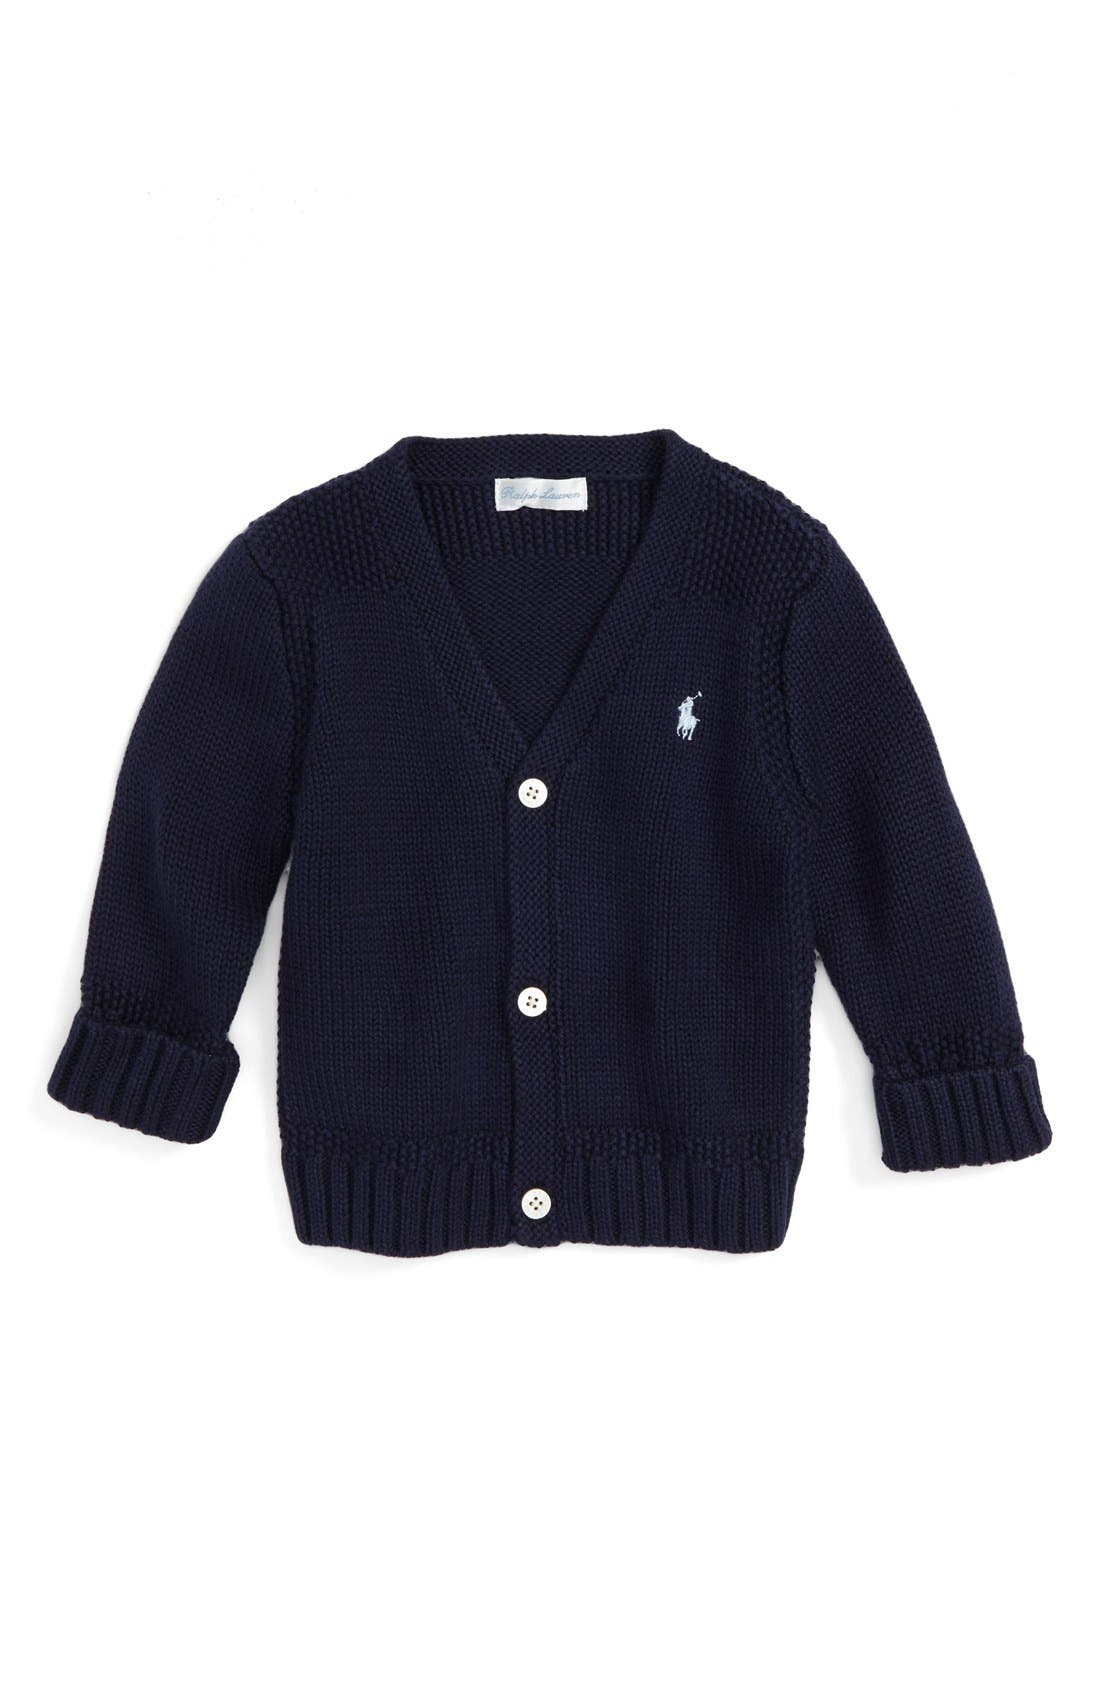 V-Neck Cardigan,                         Main,                         color, NAVY